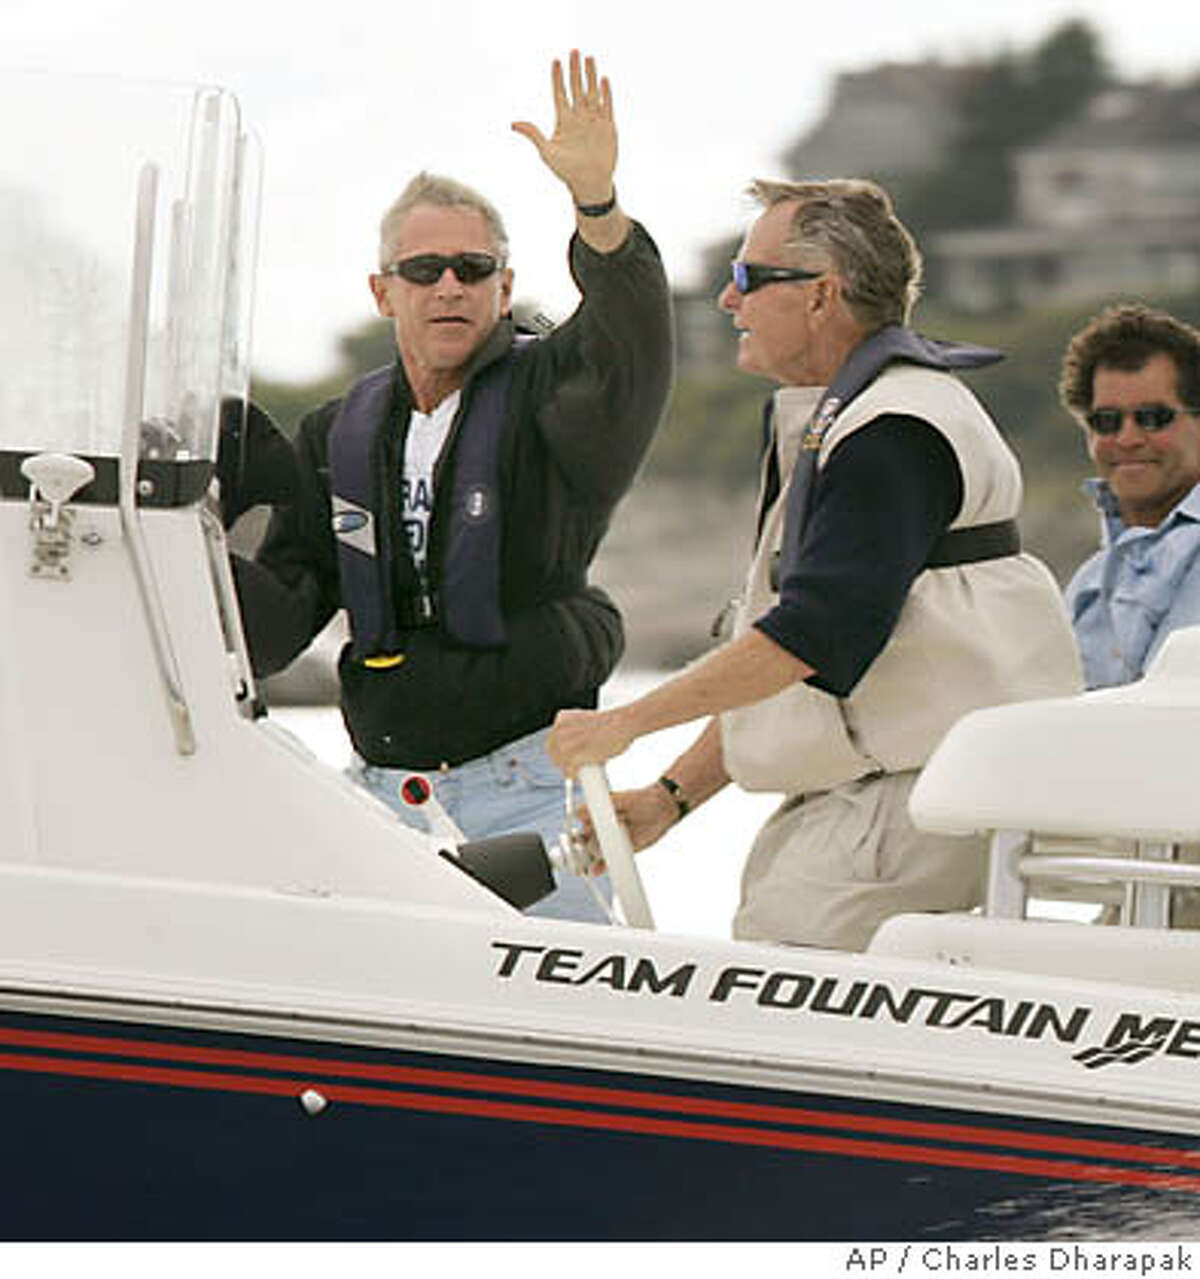 President Bush, left, waves as his father, former President George H.W. Bush, second left, drives their boat while fishing off Kennebunkport, Maine, Friday, Aug. 6, 2004. Others are unidentified. (AP Photo/Charles Dharapak)